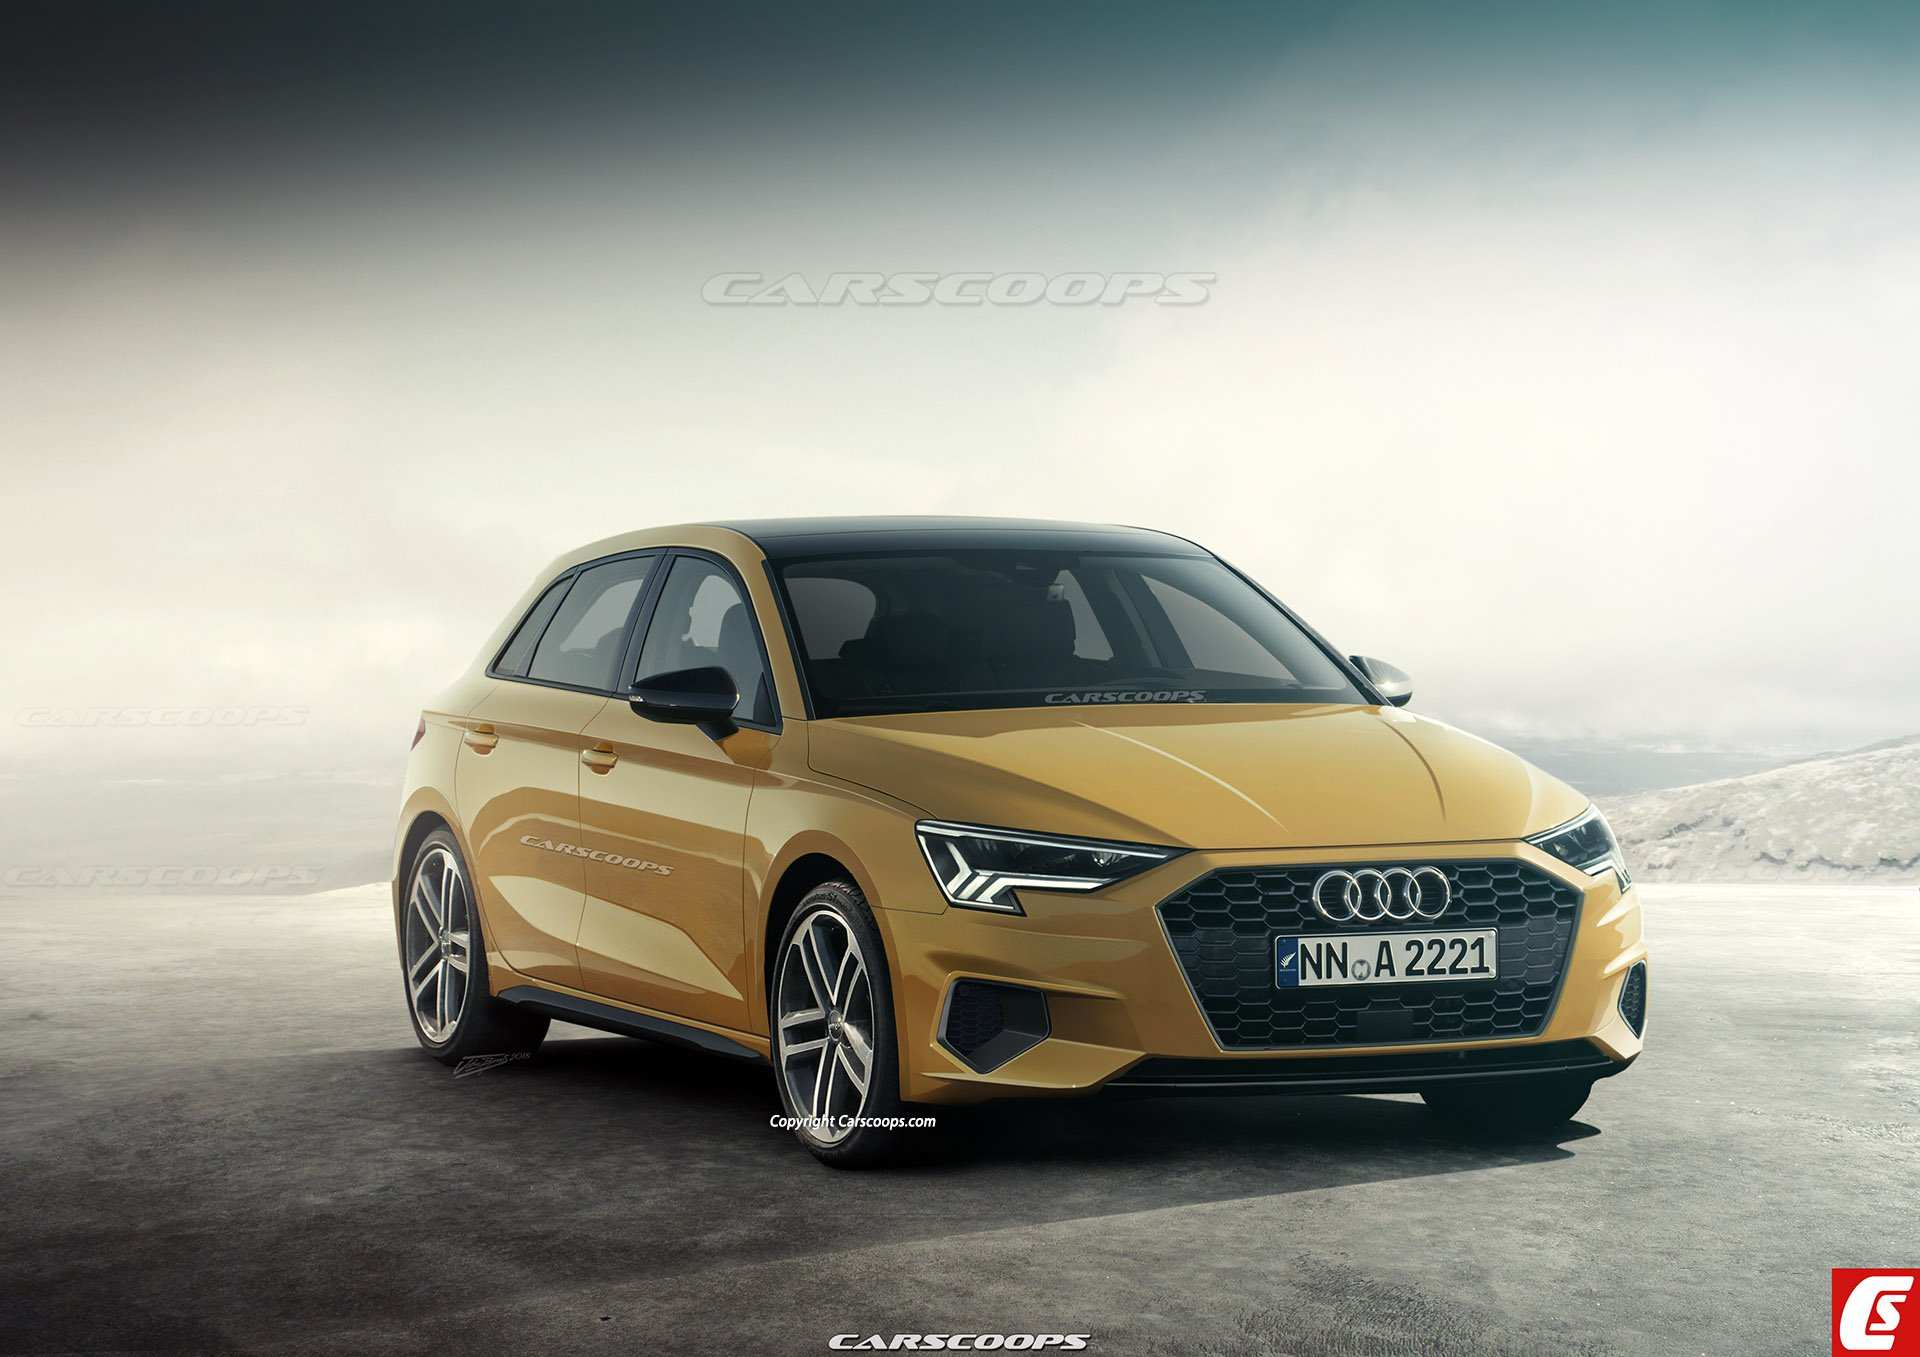 79 All New Audi A3 S Line 2020 Reviews with Audi A3 S Line 2020